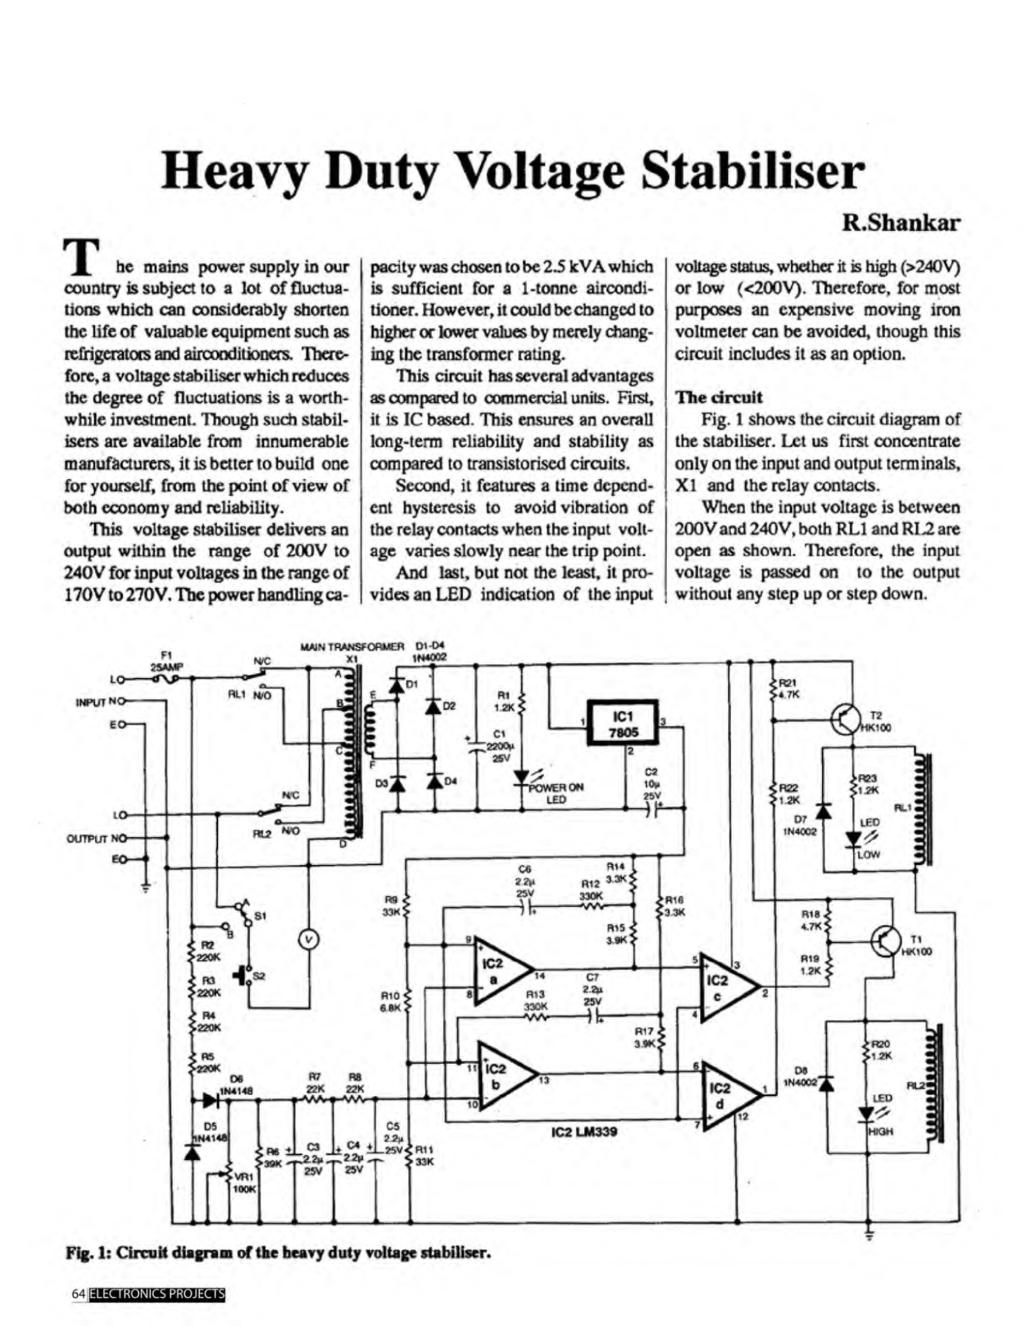 A Compilation Of 102 And Circuit Ideas For Construction Projects Electronics 12v 50w Switching Regulator Diagram R 1 Heavy Duty Voltage Stabiliser Rshankar He Mains Power Supply In Our